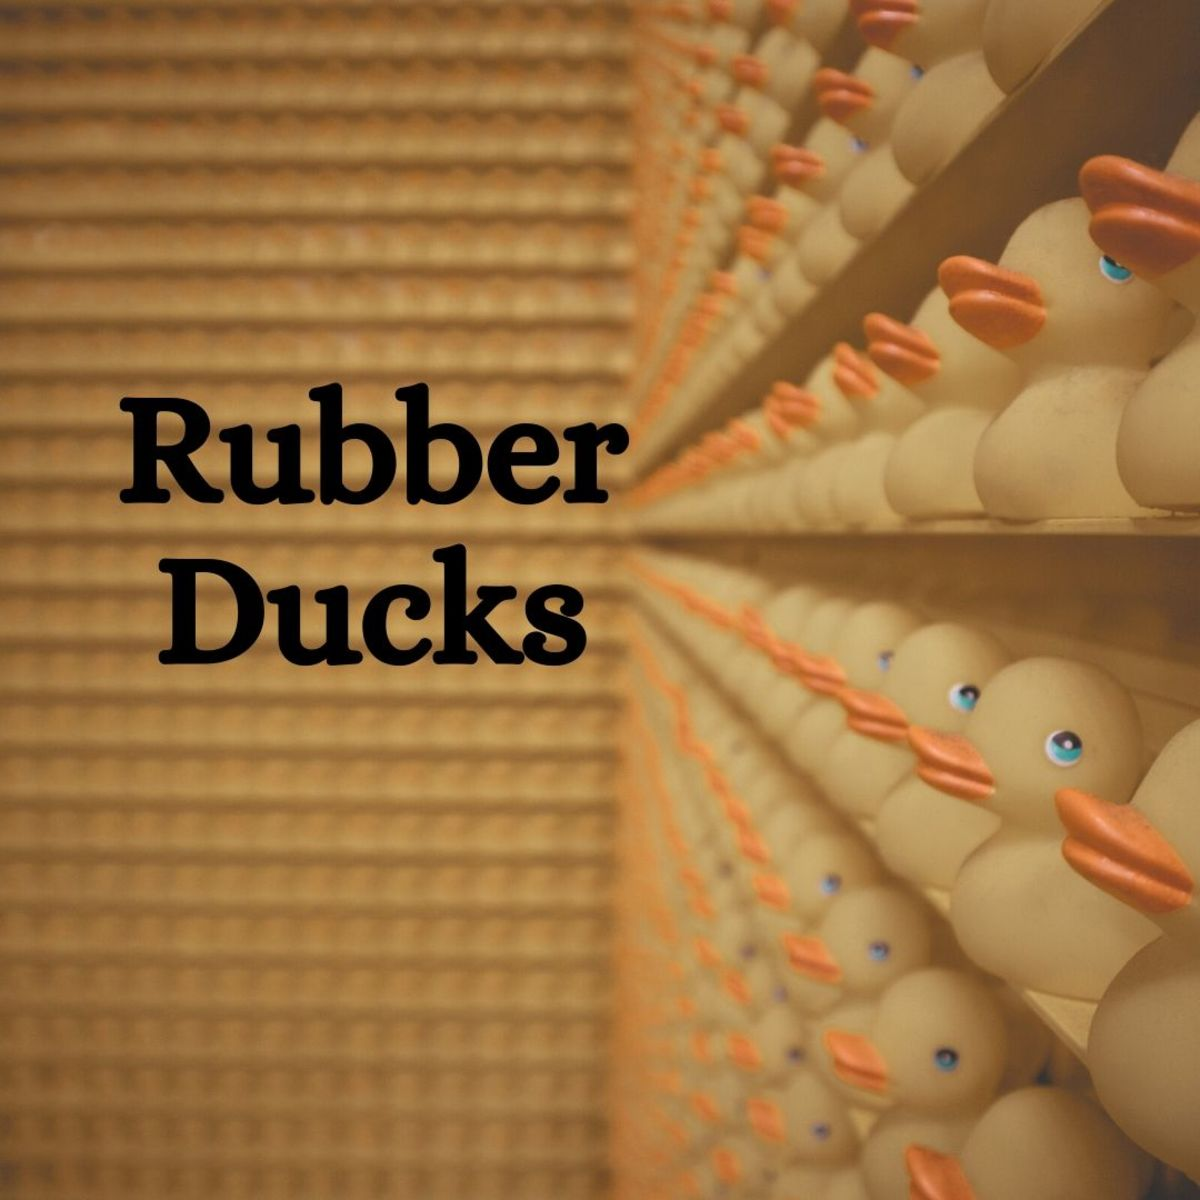 Want to collect something a bit more... unique? Why not start a rubber duck collection?